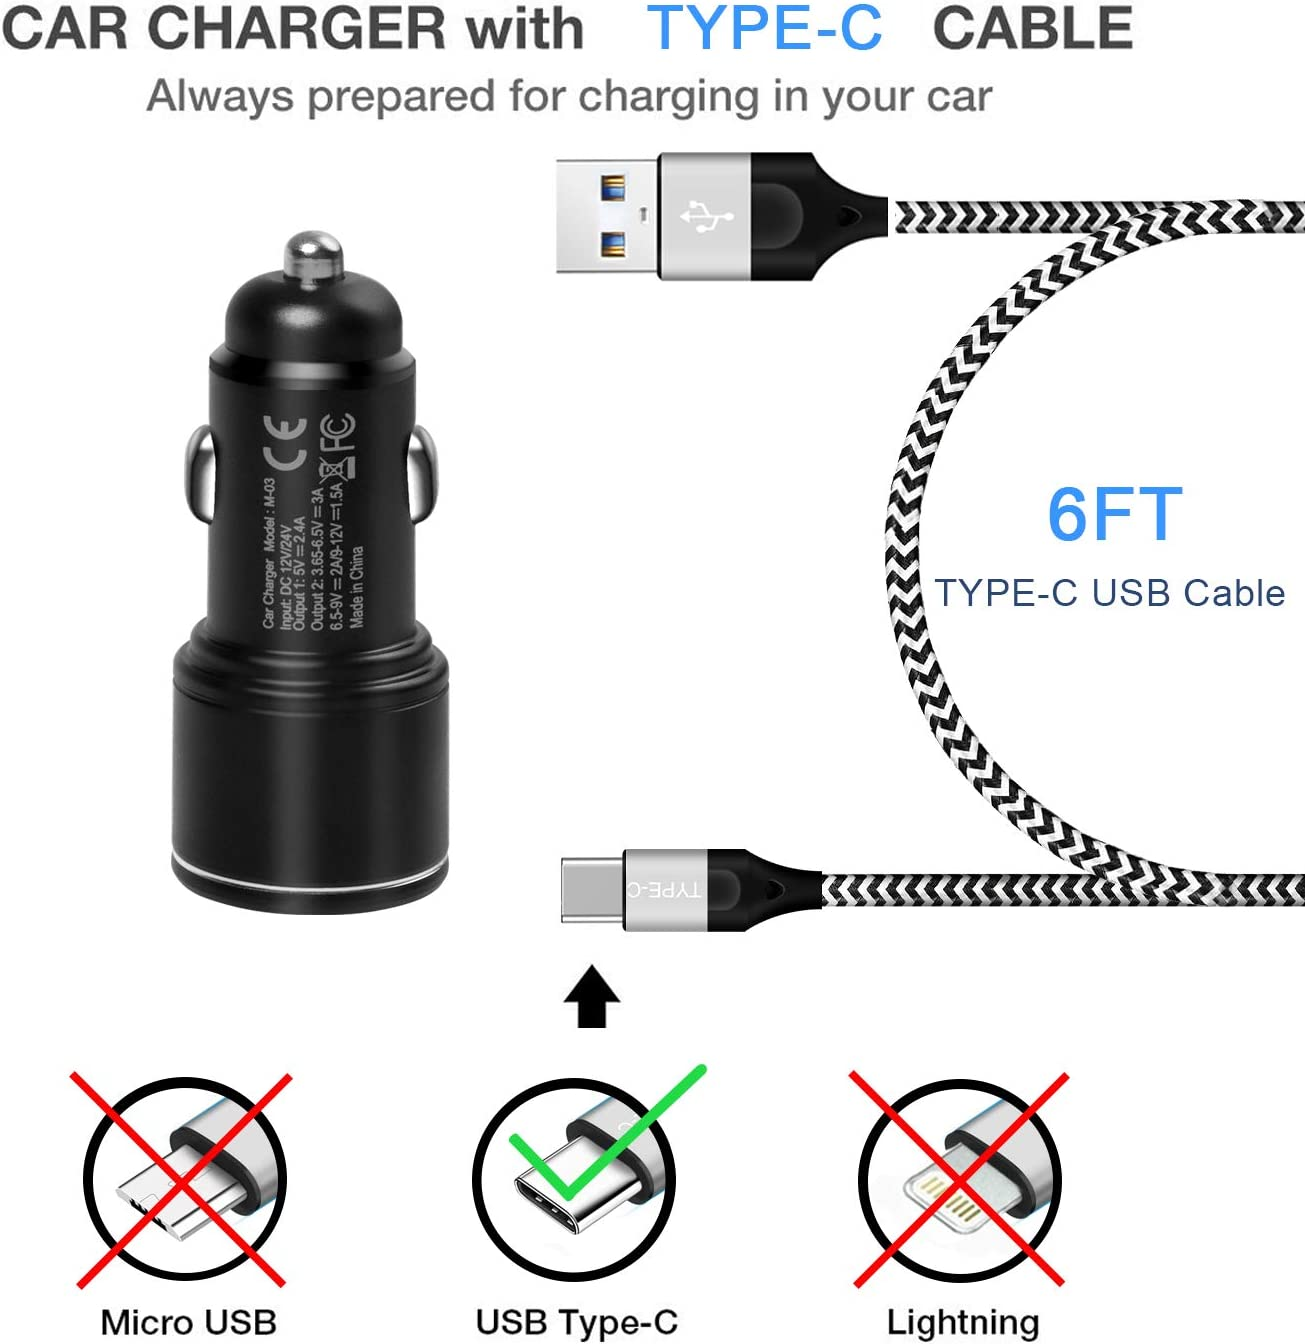 Car Charger for Samsung Galaxy S20//S20 Plus//S20 Ultra S10E S10 S10 S8 S9 S9+,Note 10 9 8 Lite,A50 A70 A80 A20 A40 A30 A31 A51 A71 A21,30W Metal Fast Adapter,Dual Port:Quick Charge 3.0+2.4A+6FT USB C